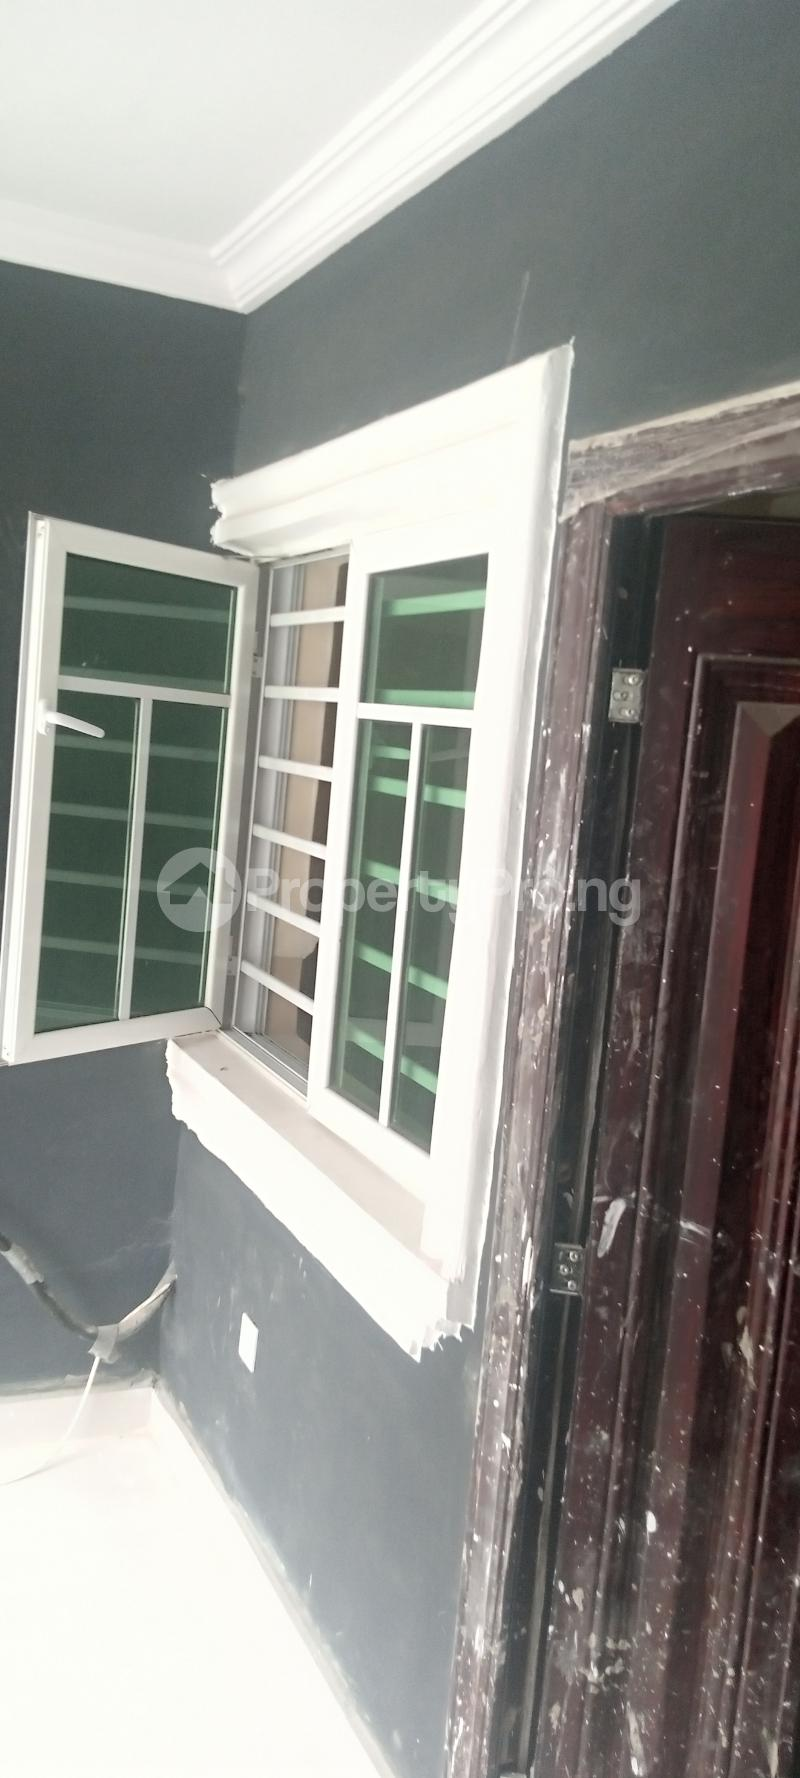 3 bedroom Flat / Apartment for rent A close Oke-Ira Ogba Lagos - 12